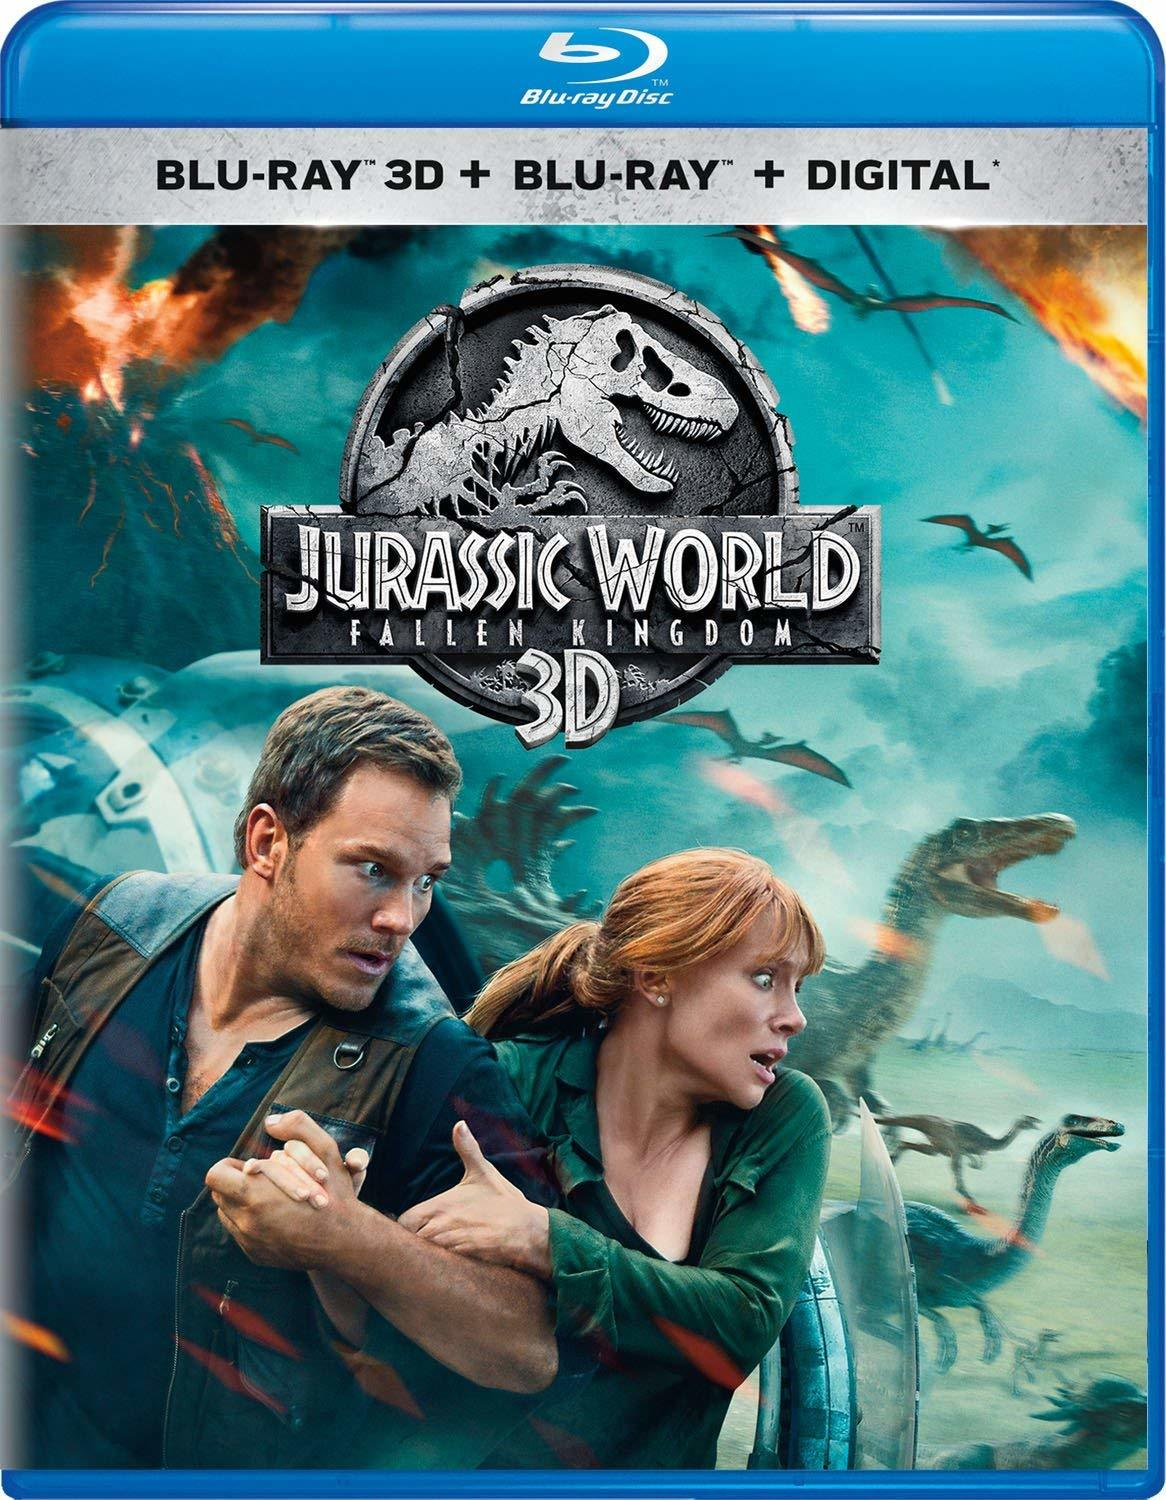 Jurassic World 2: Fallen Kingdom 3D (Blu-ray 3D)(Region Free)